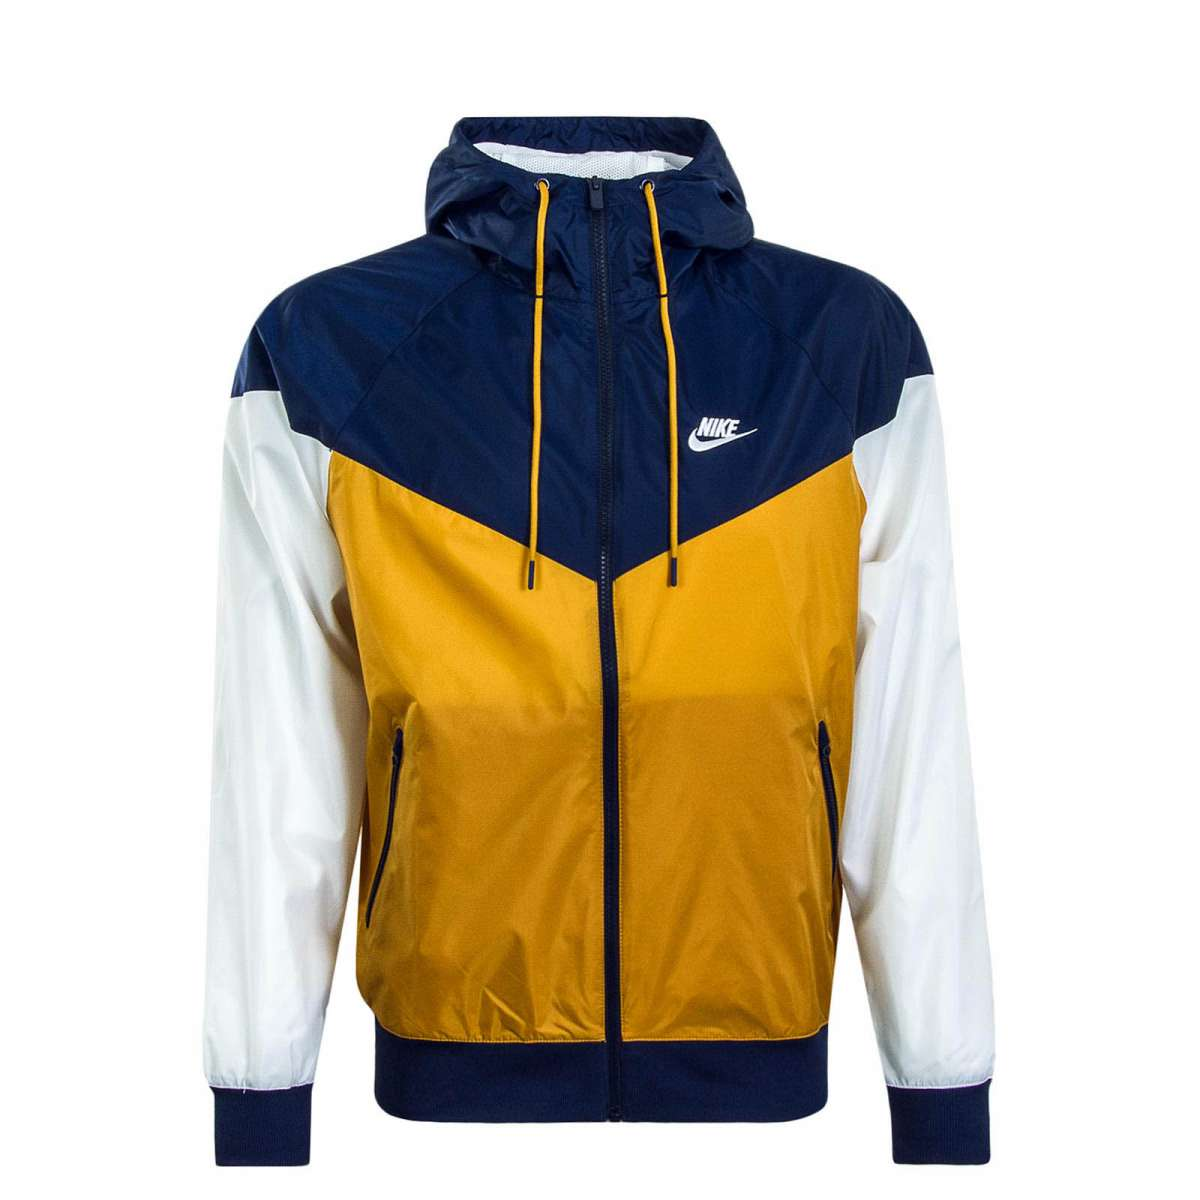 Herren Jacke NSW He WR Navy Gold White